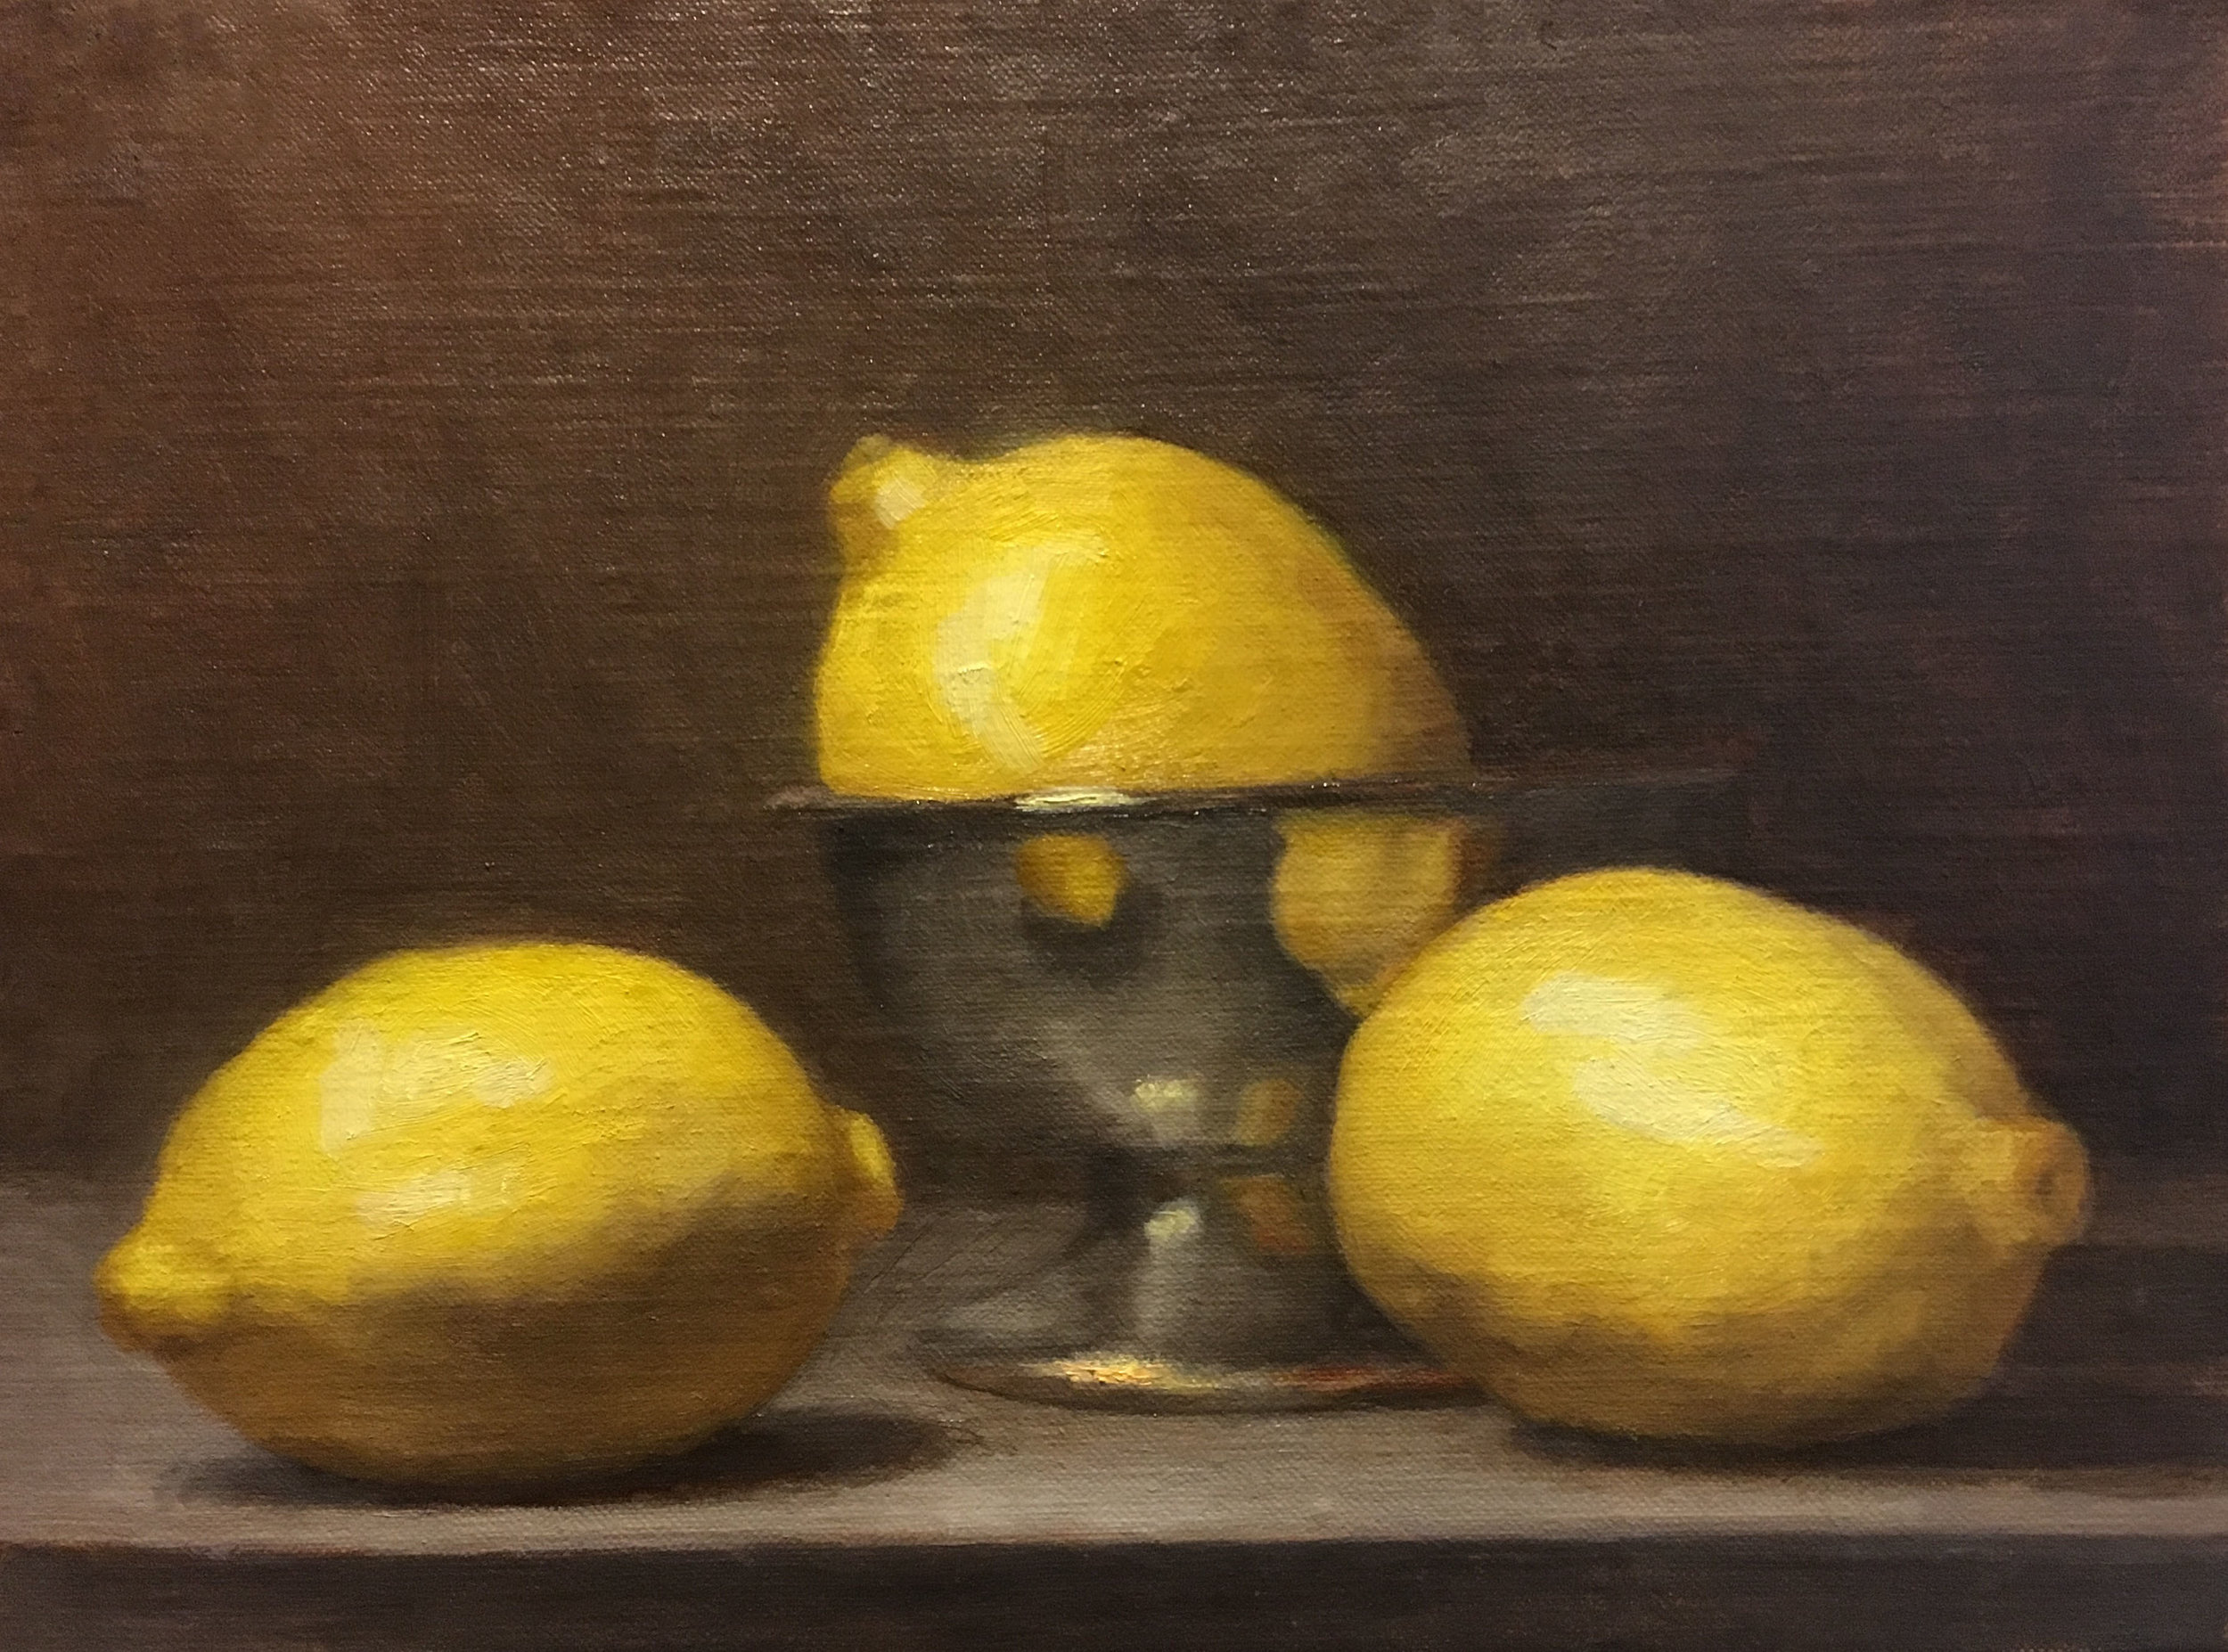 Lemons,  2016, oil on canvas, 6 x 8 in. Private collection.